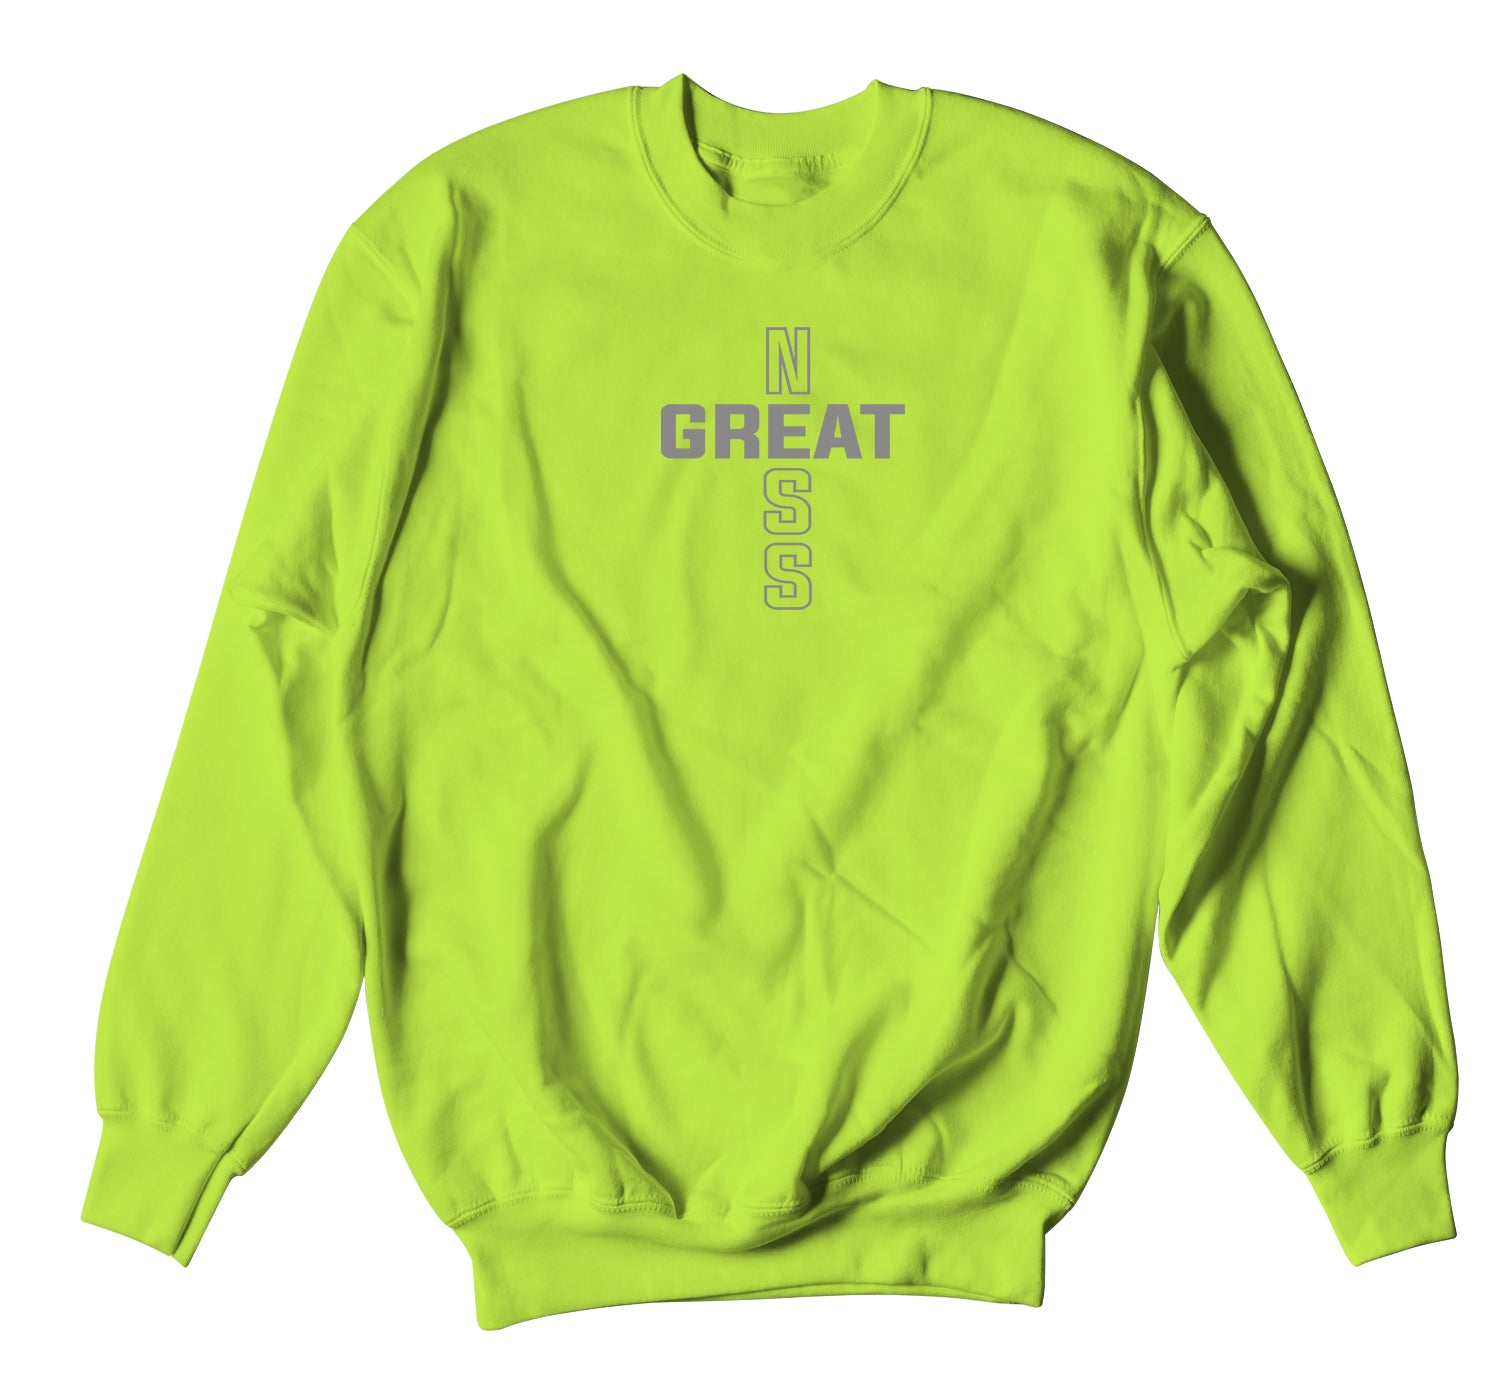 Sneaker collection Jordan 4 neon 95 matching crewneck sweaters